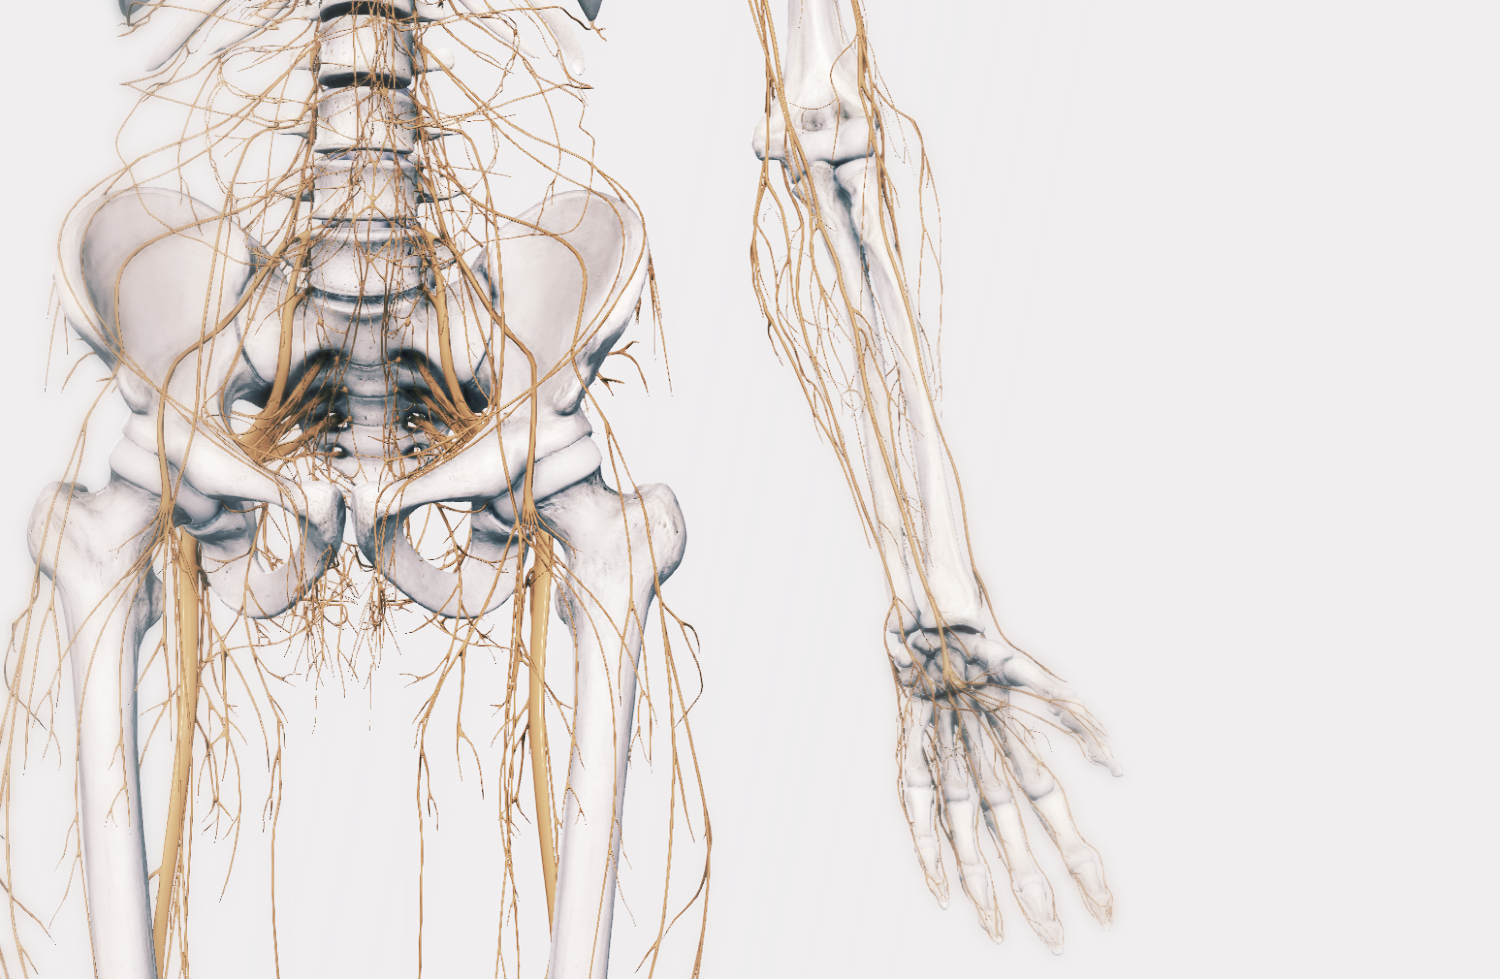 NOT all leg pains are SCIATICA